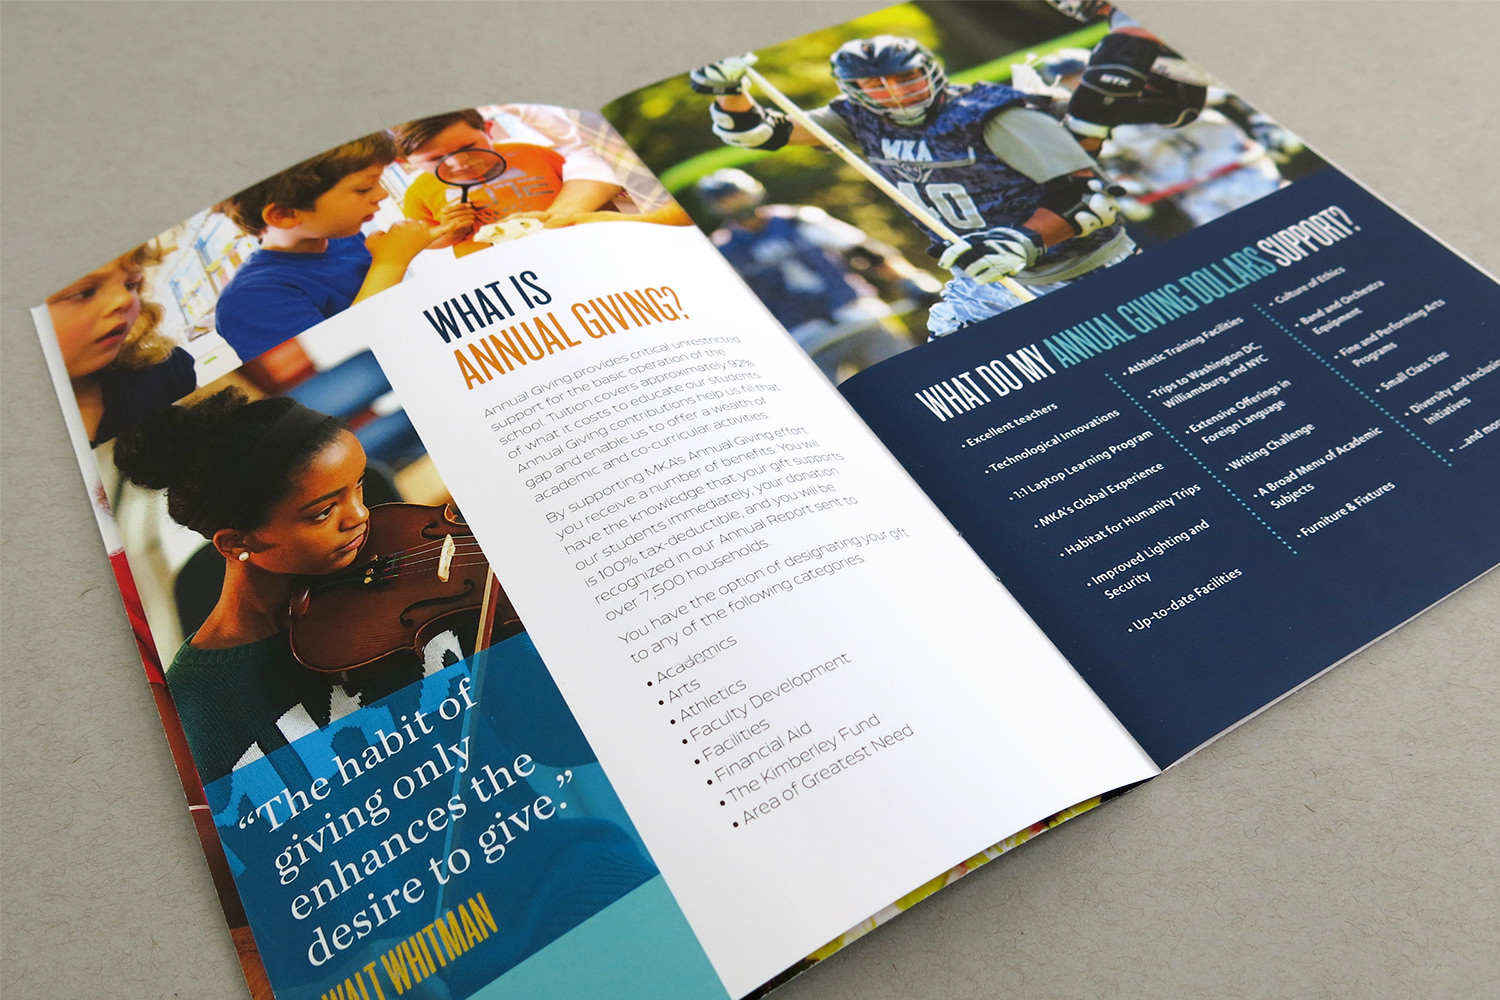 Montclair Kimberley Academy Annual Giving Brochure